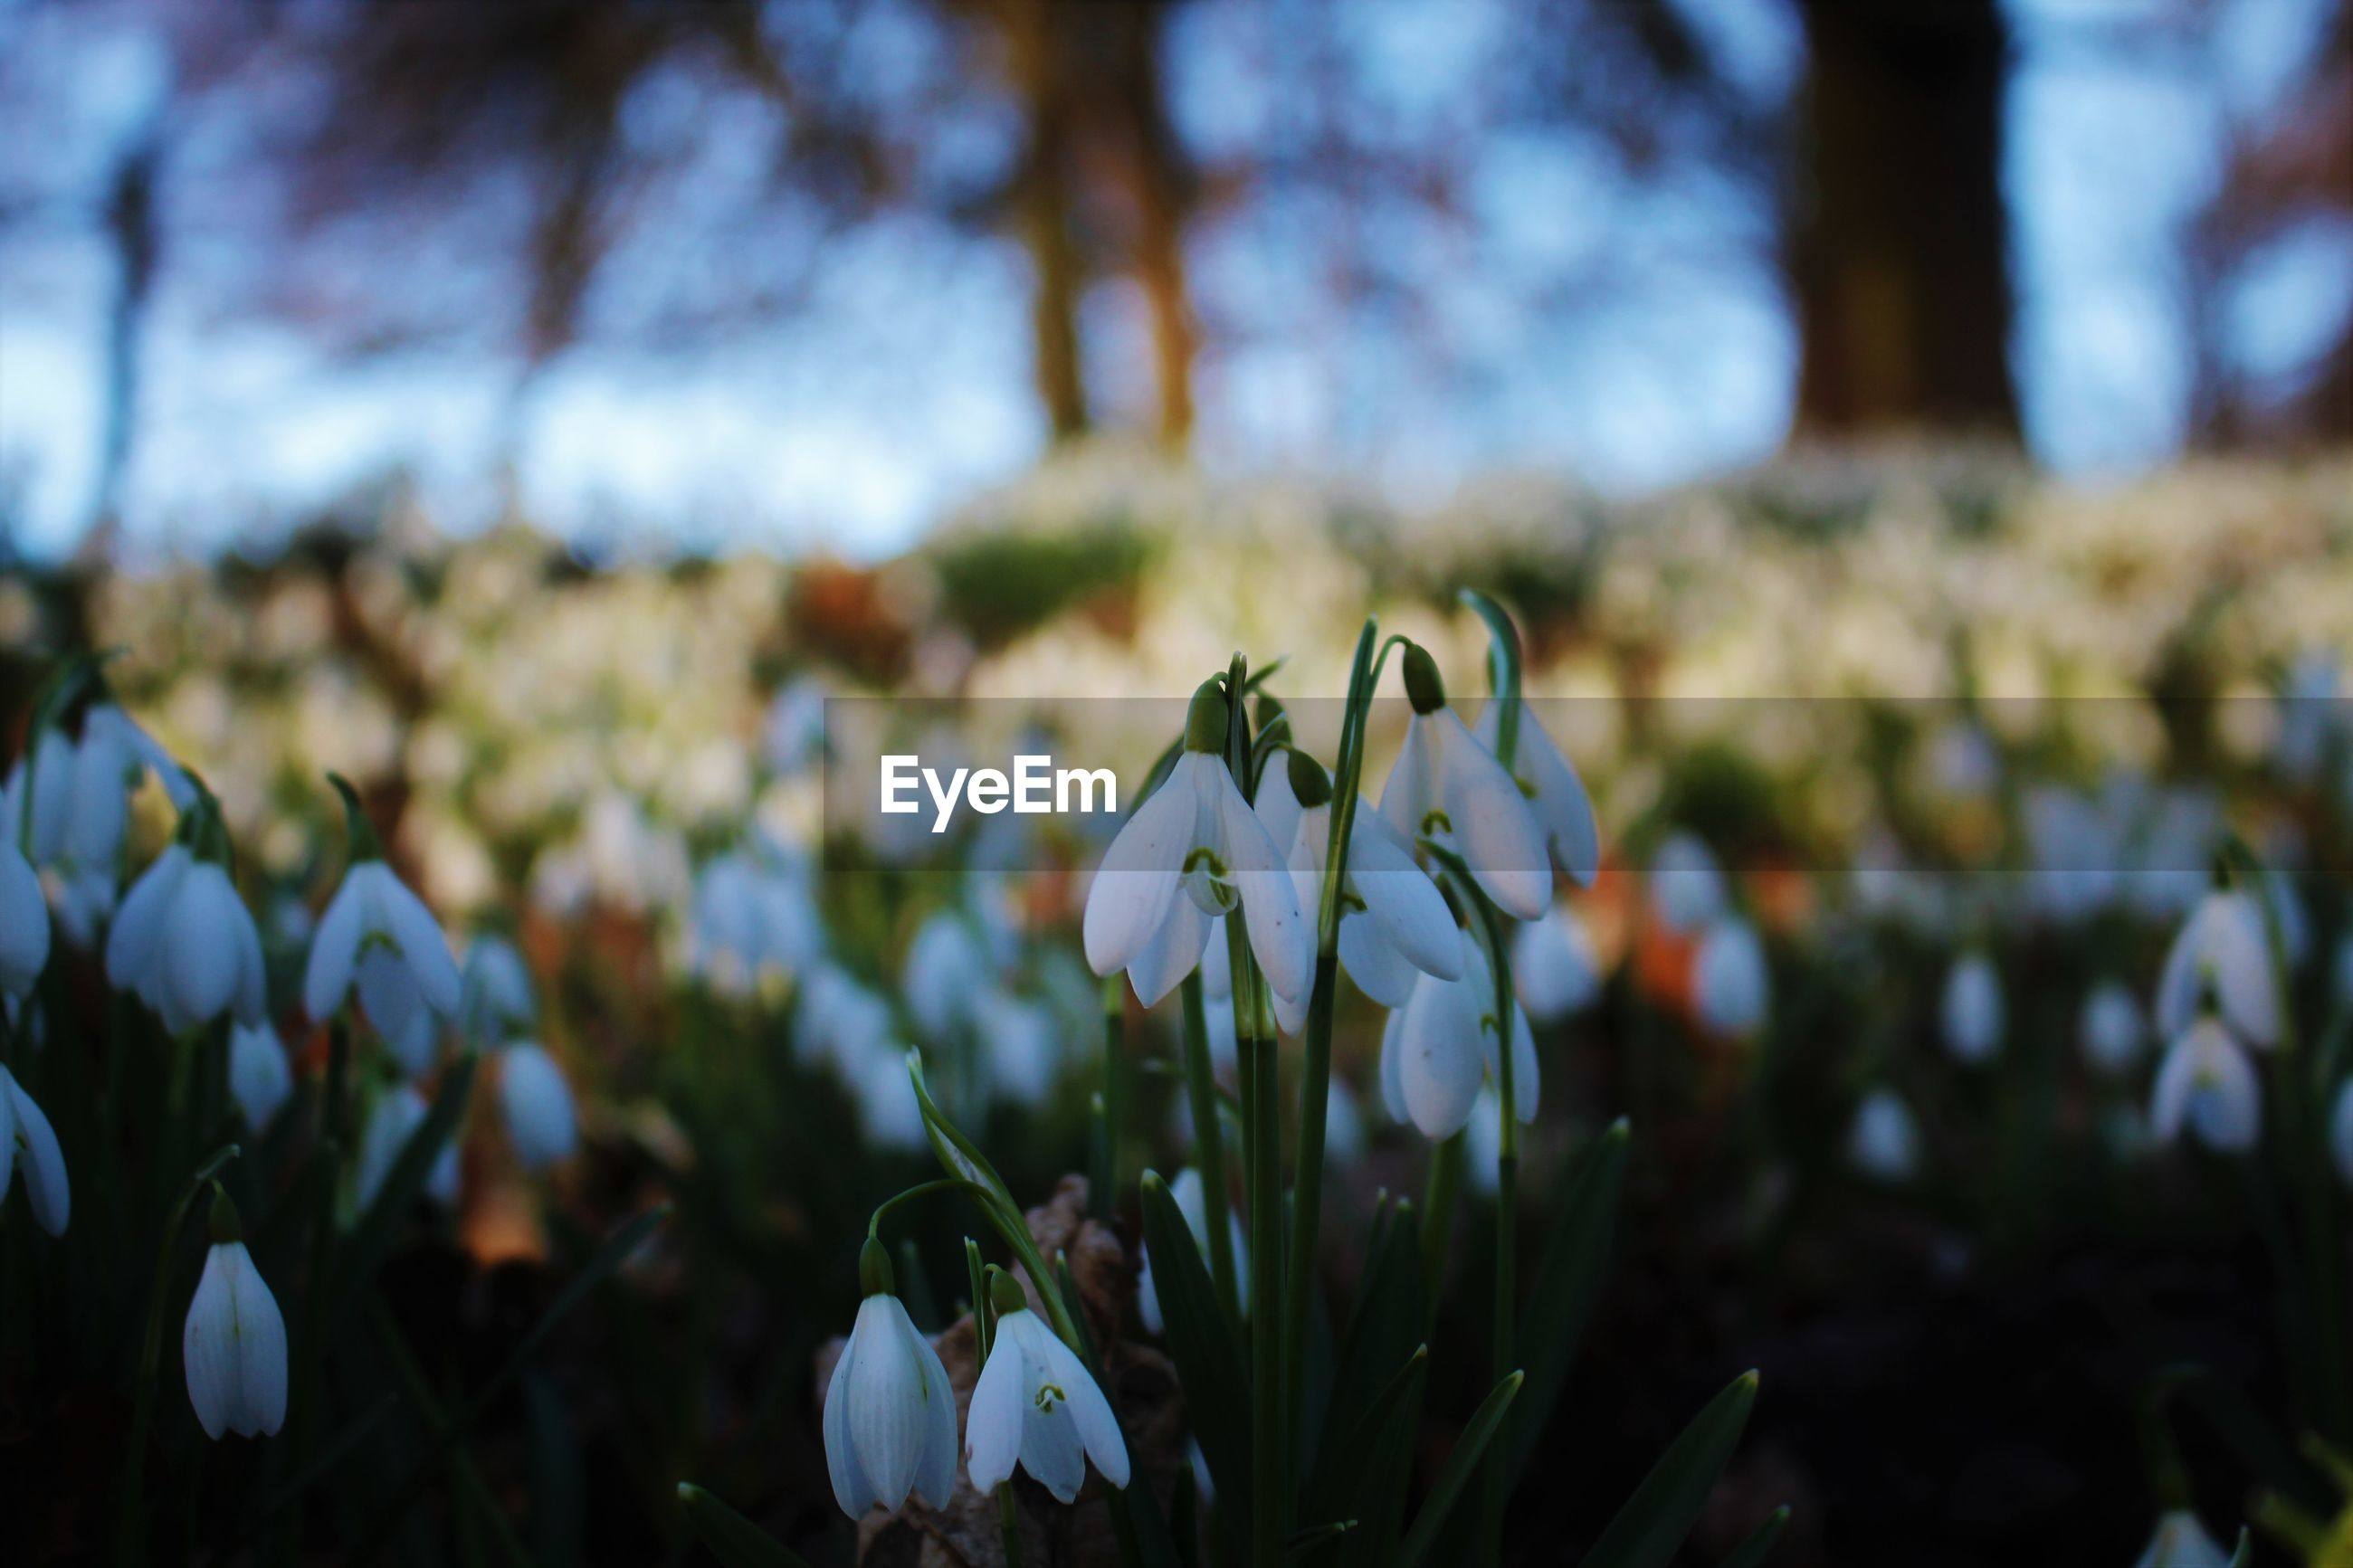 CLOSE-UP OF WHITE CROCUS BLOOMING IN FIELD